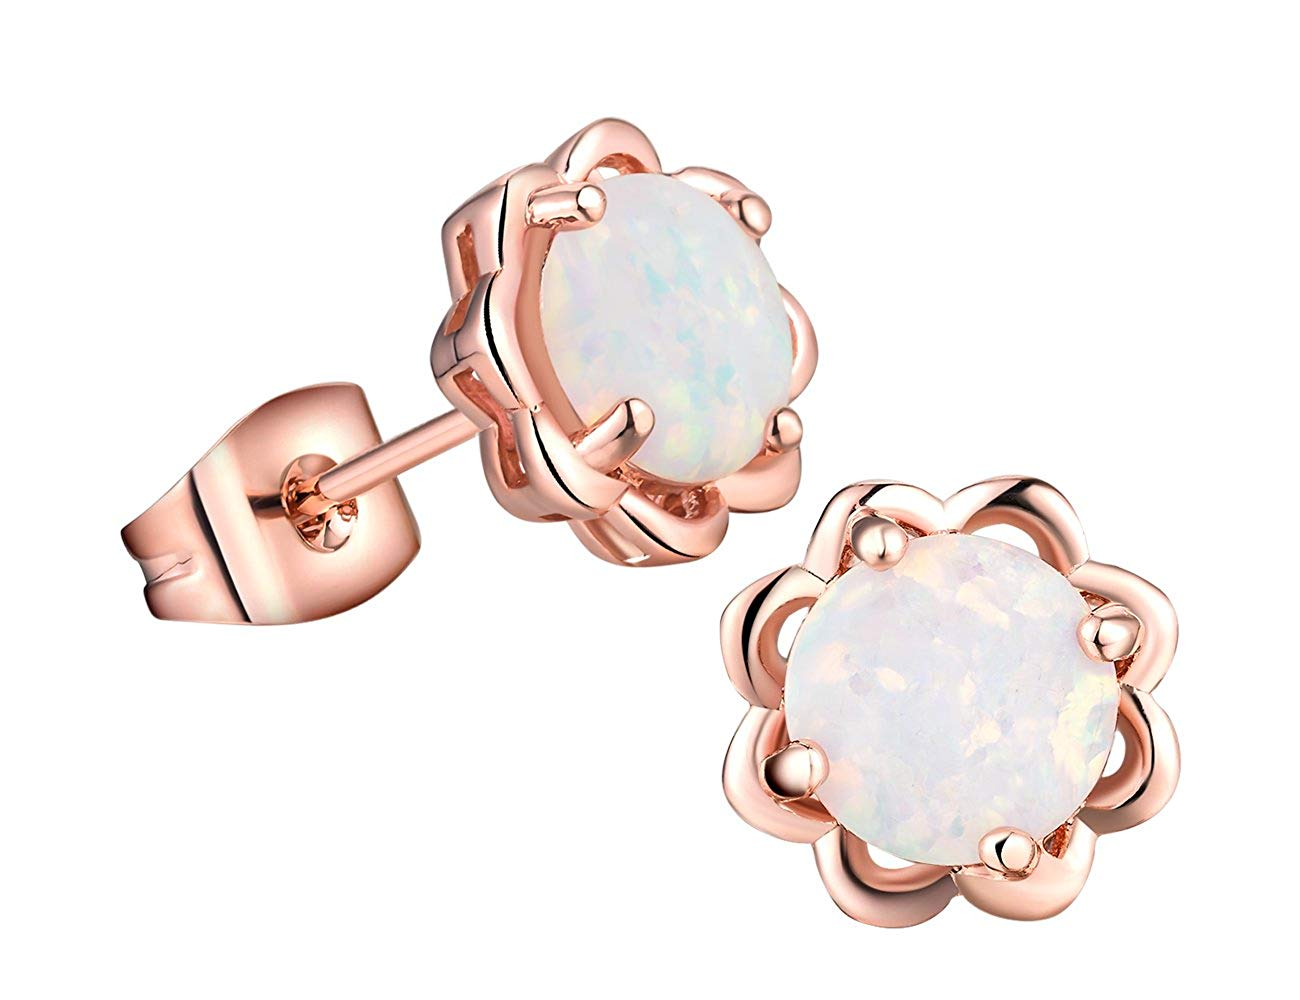 18K Rose Gold Plated Earrings Birthstone for Women Girls 8mm set Round Created Opal Stud Earrings Sets